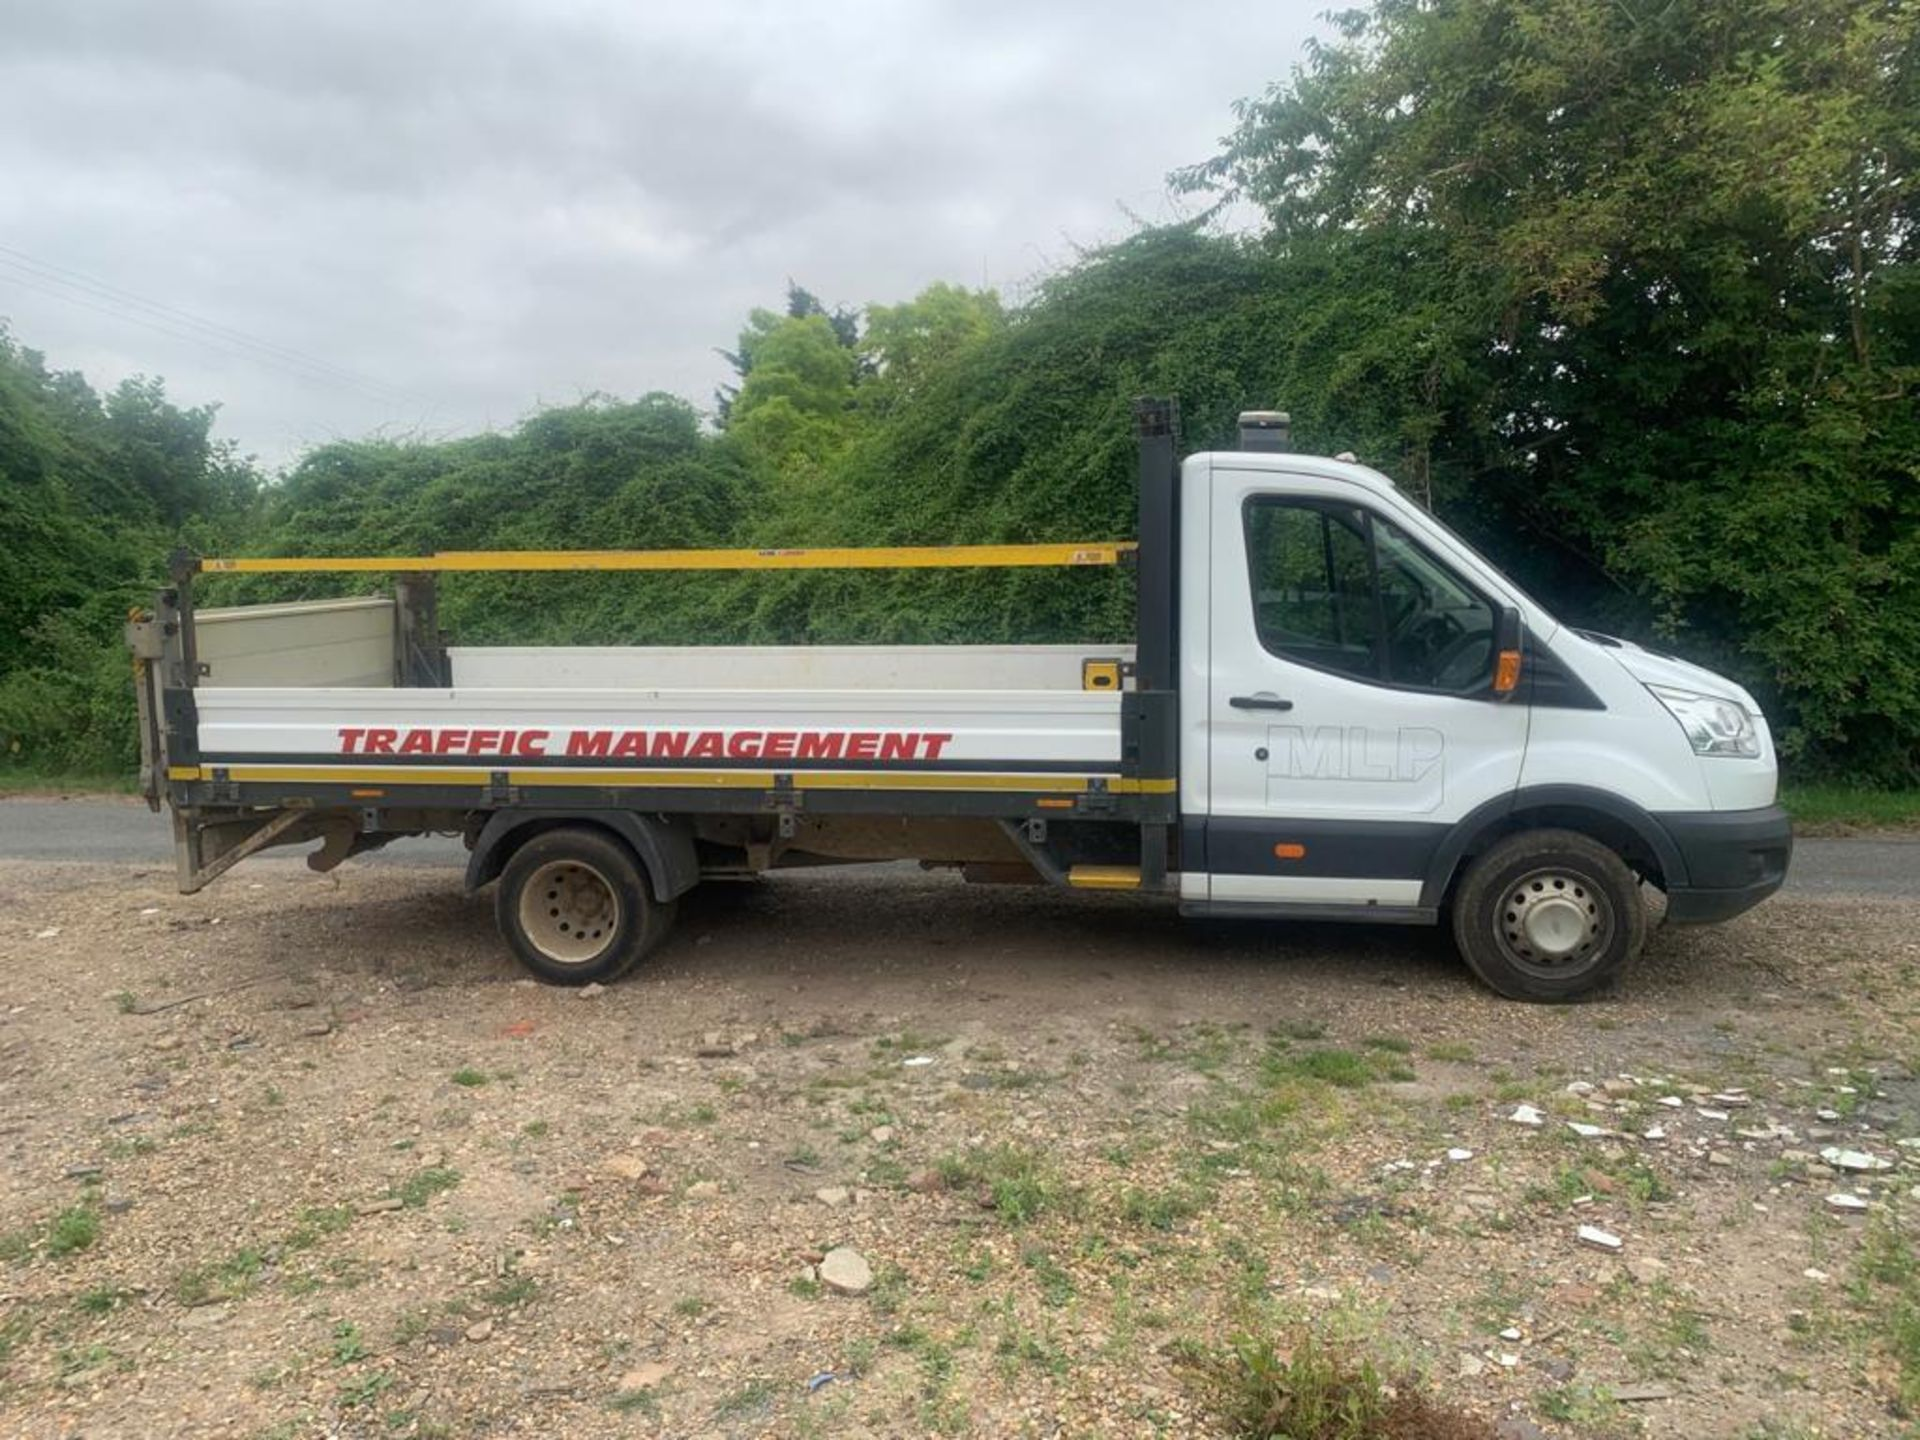 2016 FORD TRANSIT 350 DROPSIDE TAIL LIFT ALUMINUM BODY - Image 4 of 20